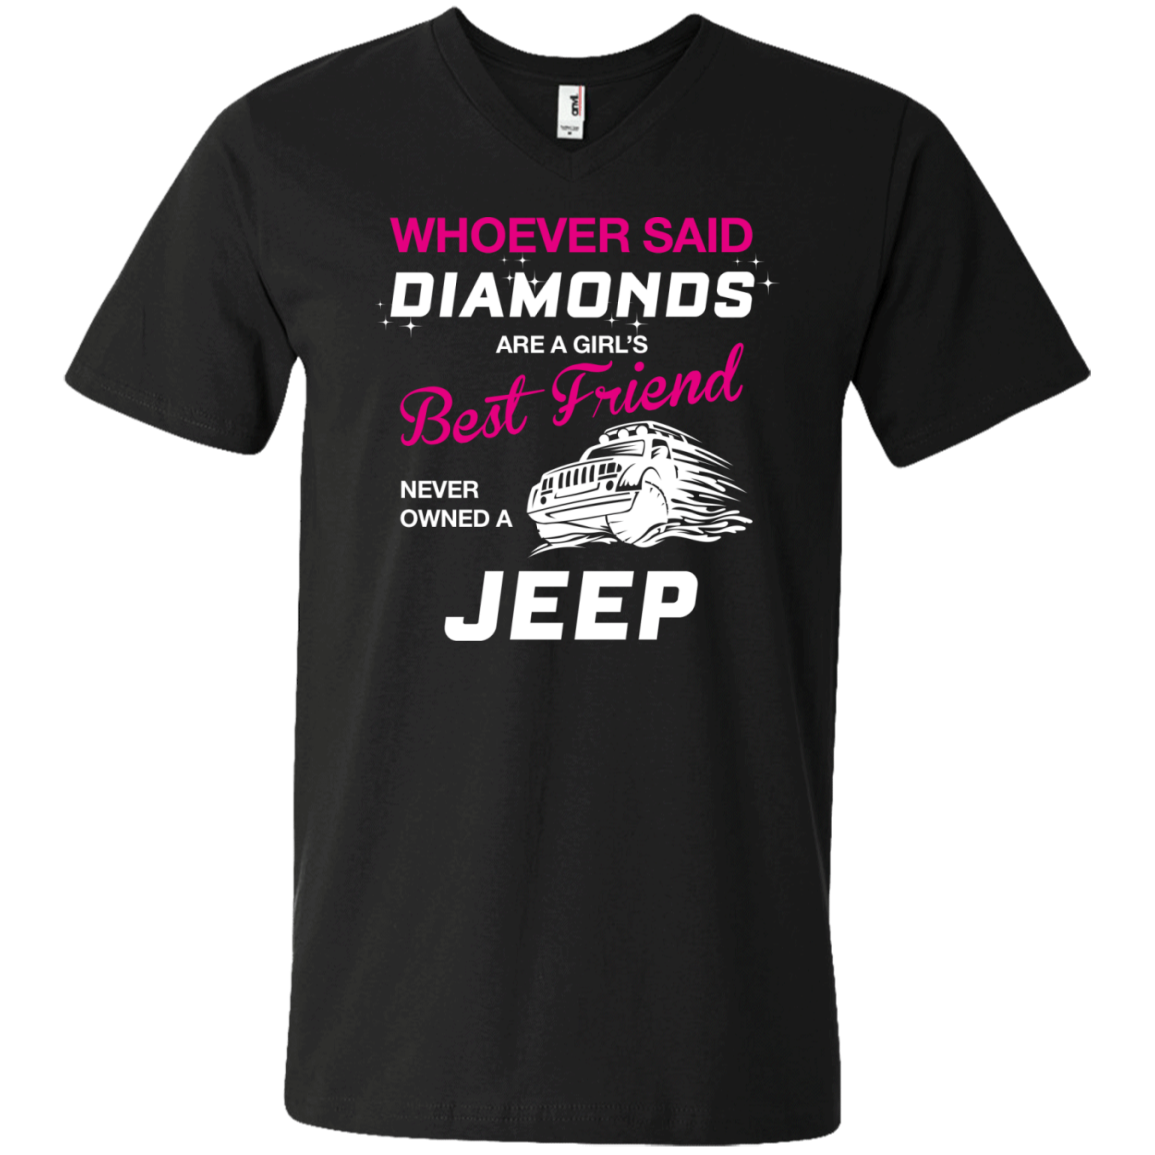 Whoever said DIAMONDS are a girl's Best Friend never owned a JEEP - TheSunCat.com - 7